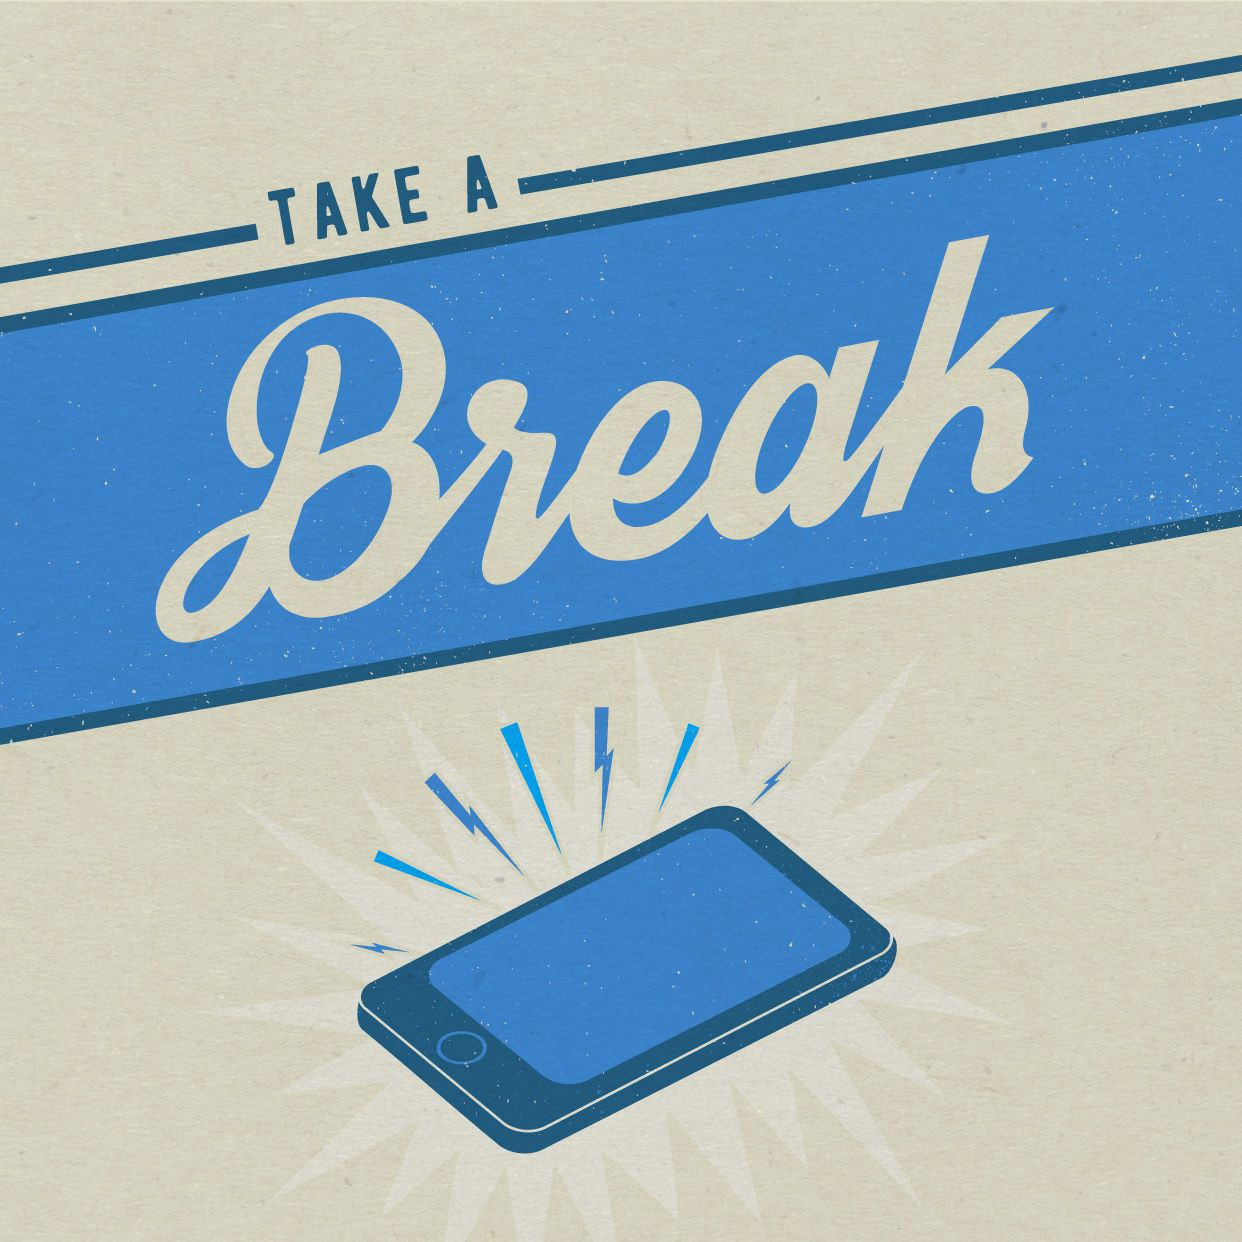 Three Reasons to Take a Break From Screens